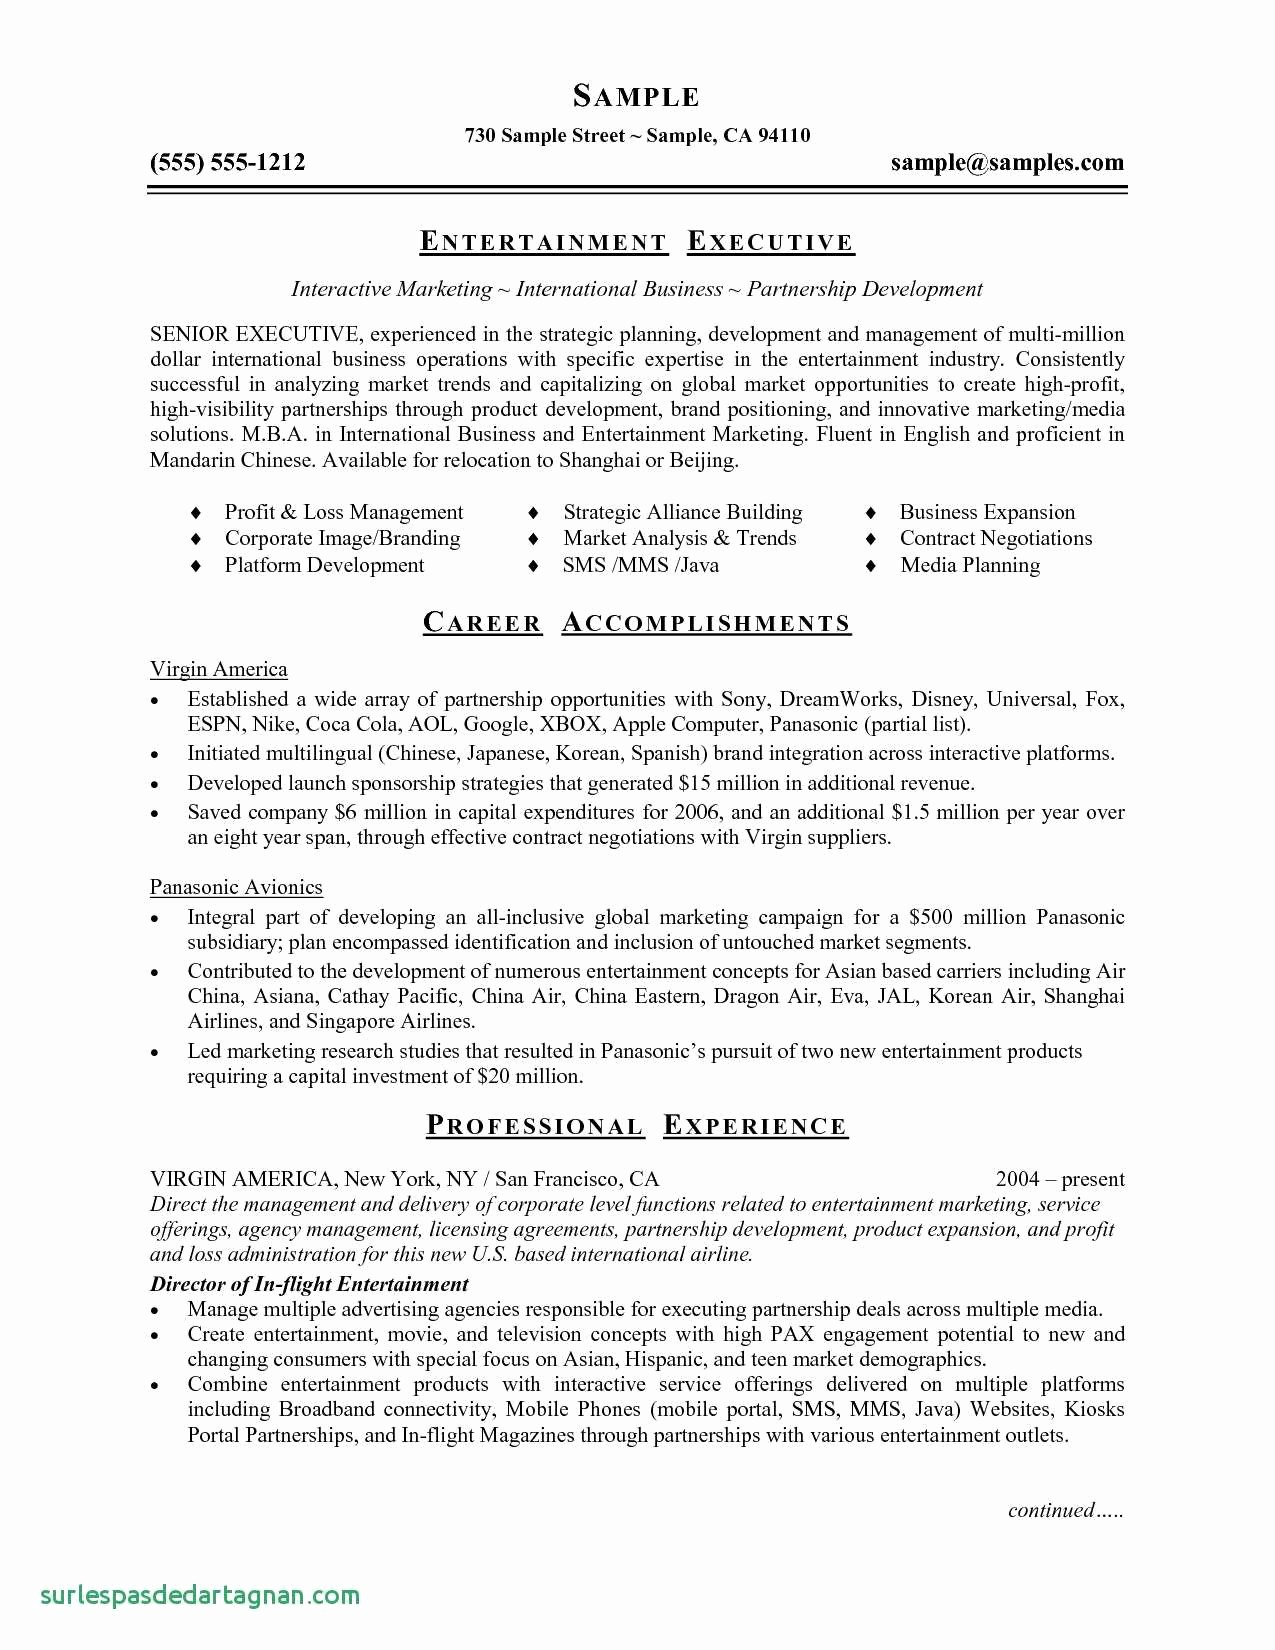 Classic Resume Template Word Download Inspirational Free Dental Hygiene Resume Samples Template Pdf Tag